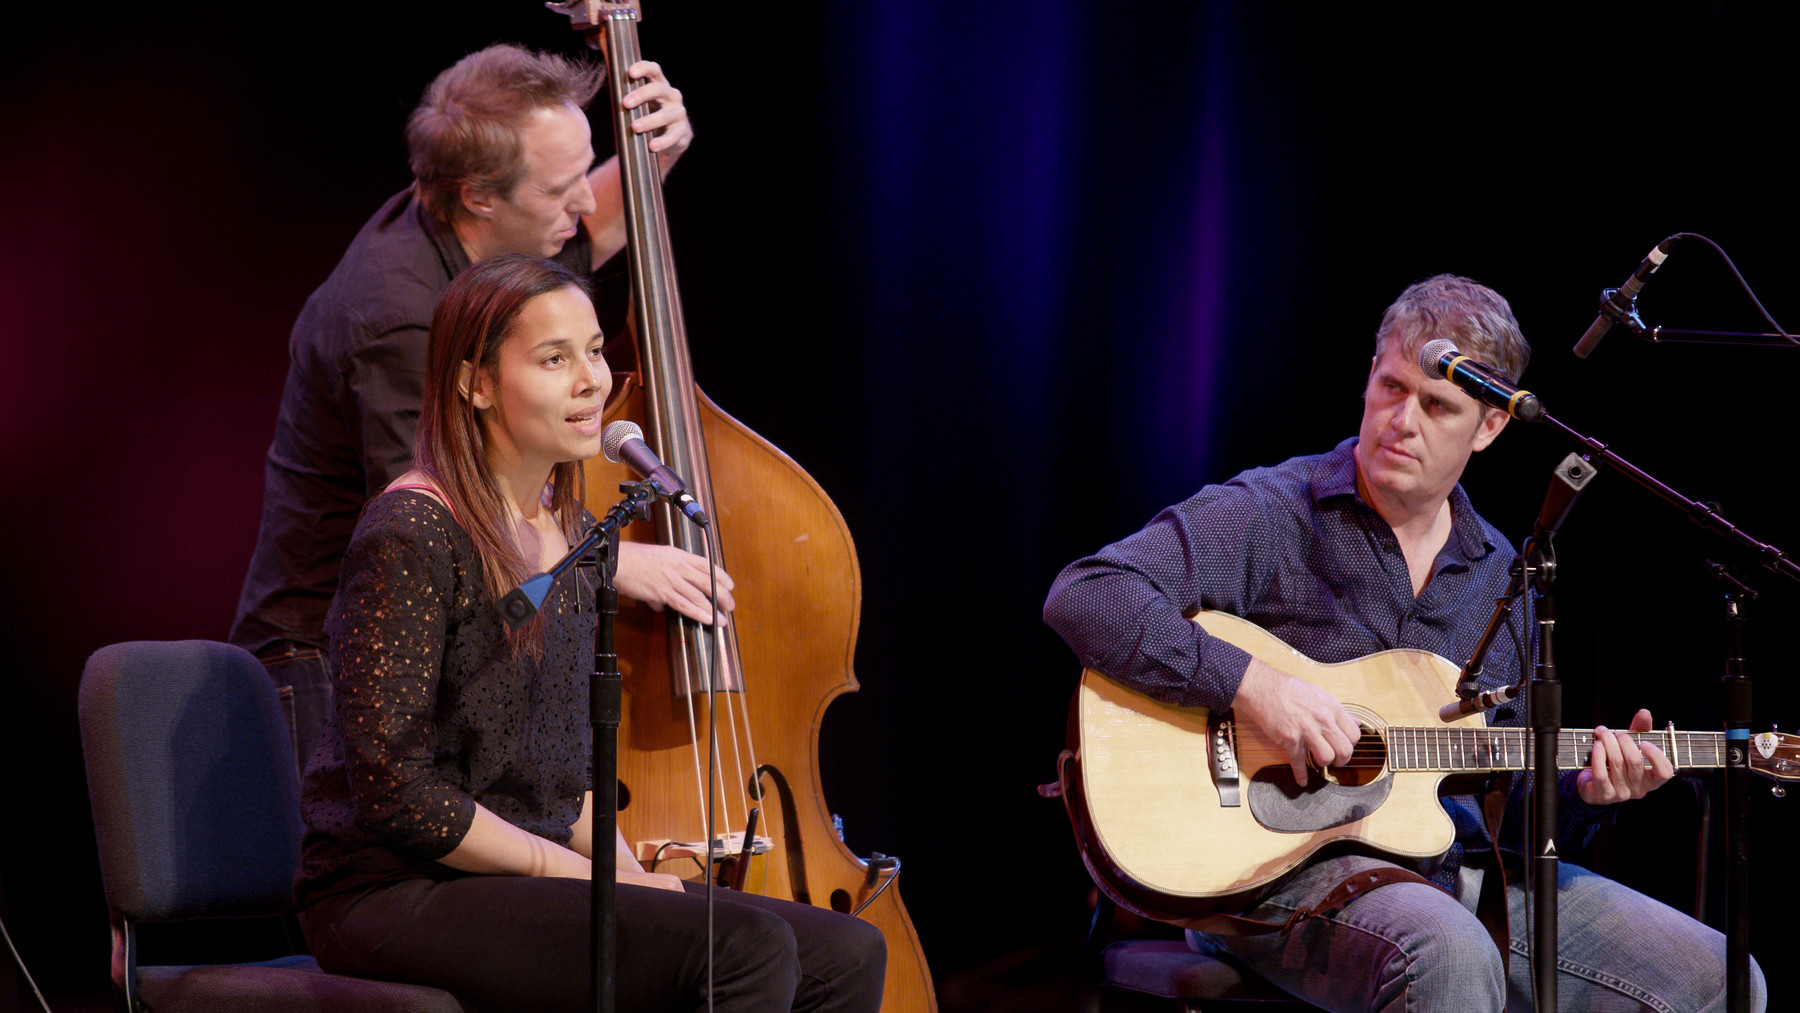 Rhiannon Giddens, Jason Sypher, and Dirk Powell